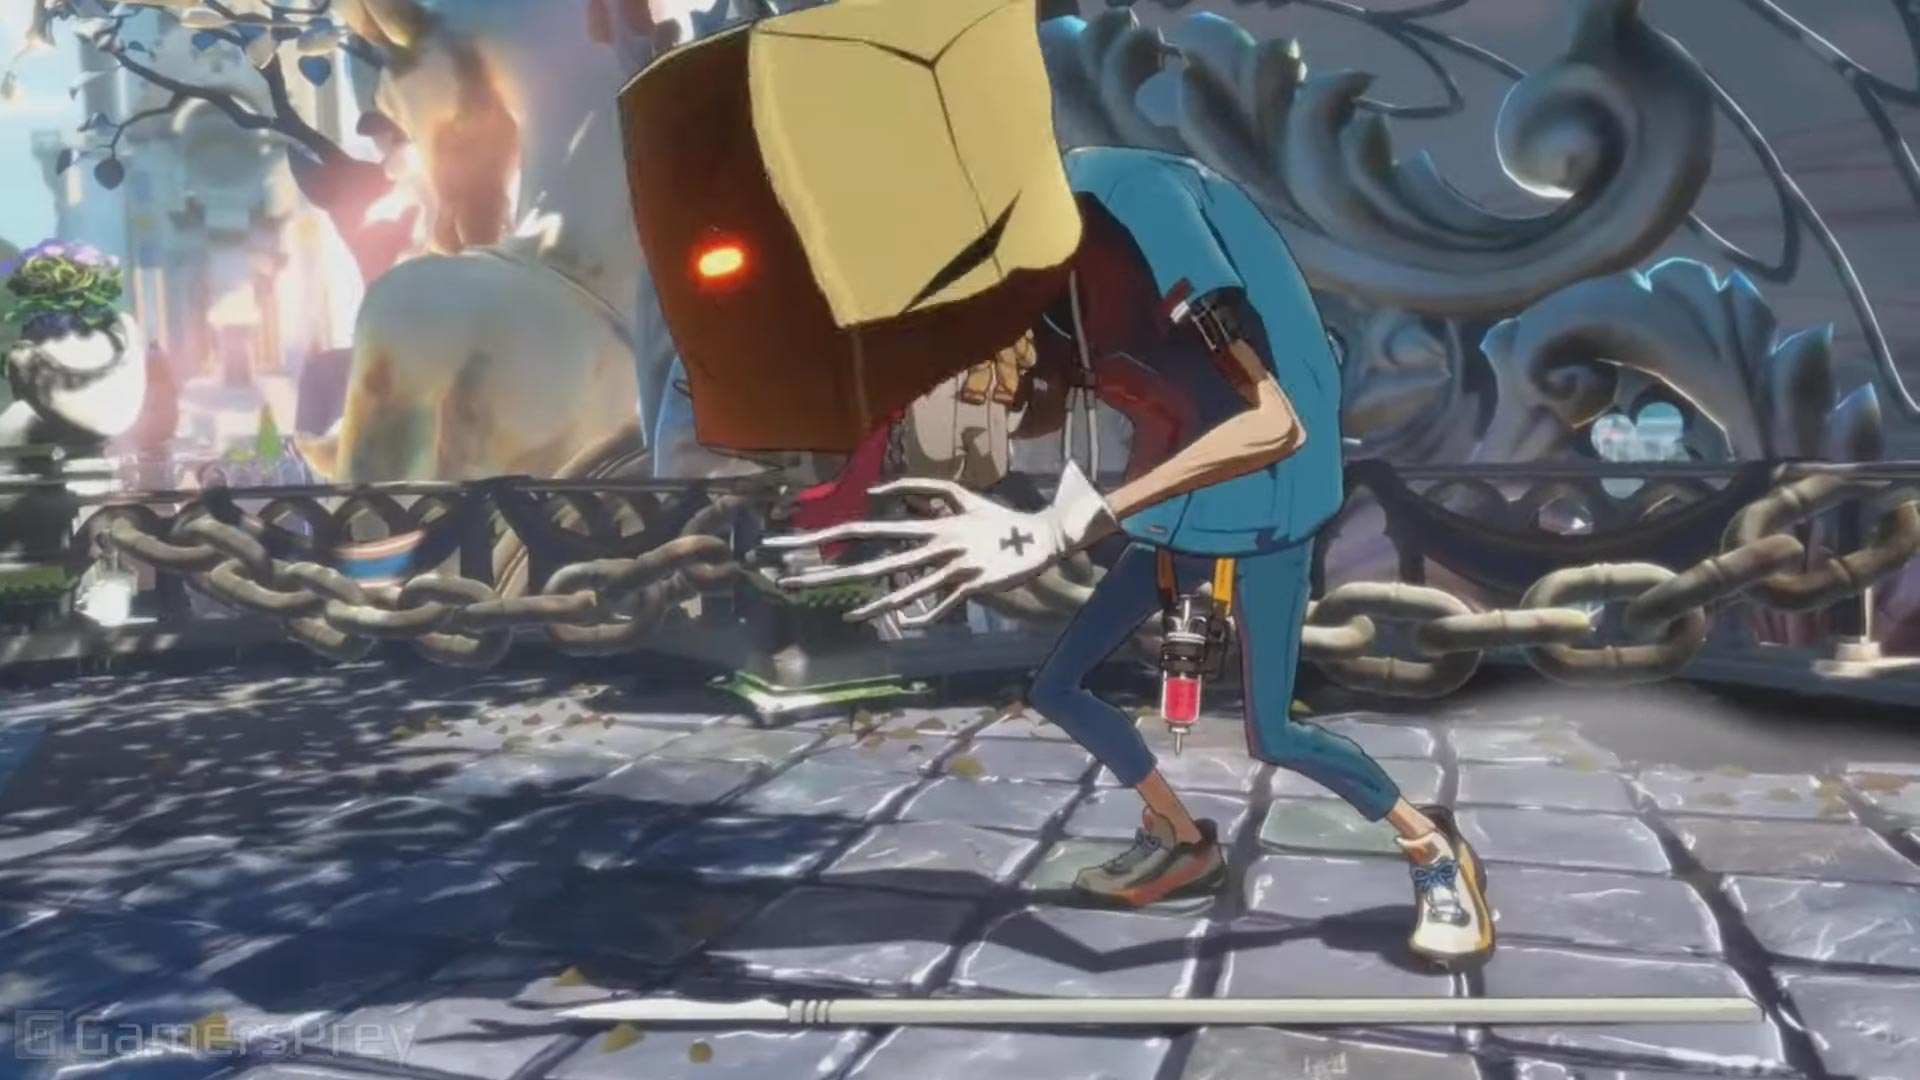 Guilty Gear Strive Faust Reveal Trailer Images 3 out of 6 image gallery